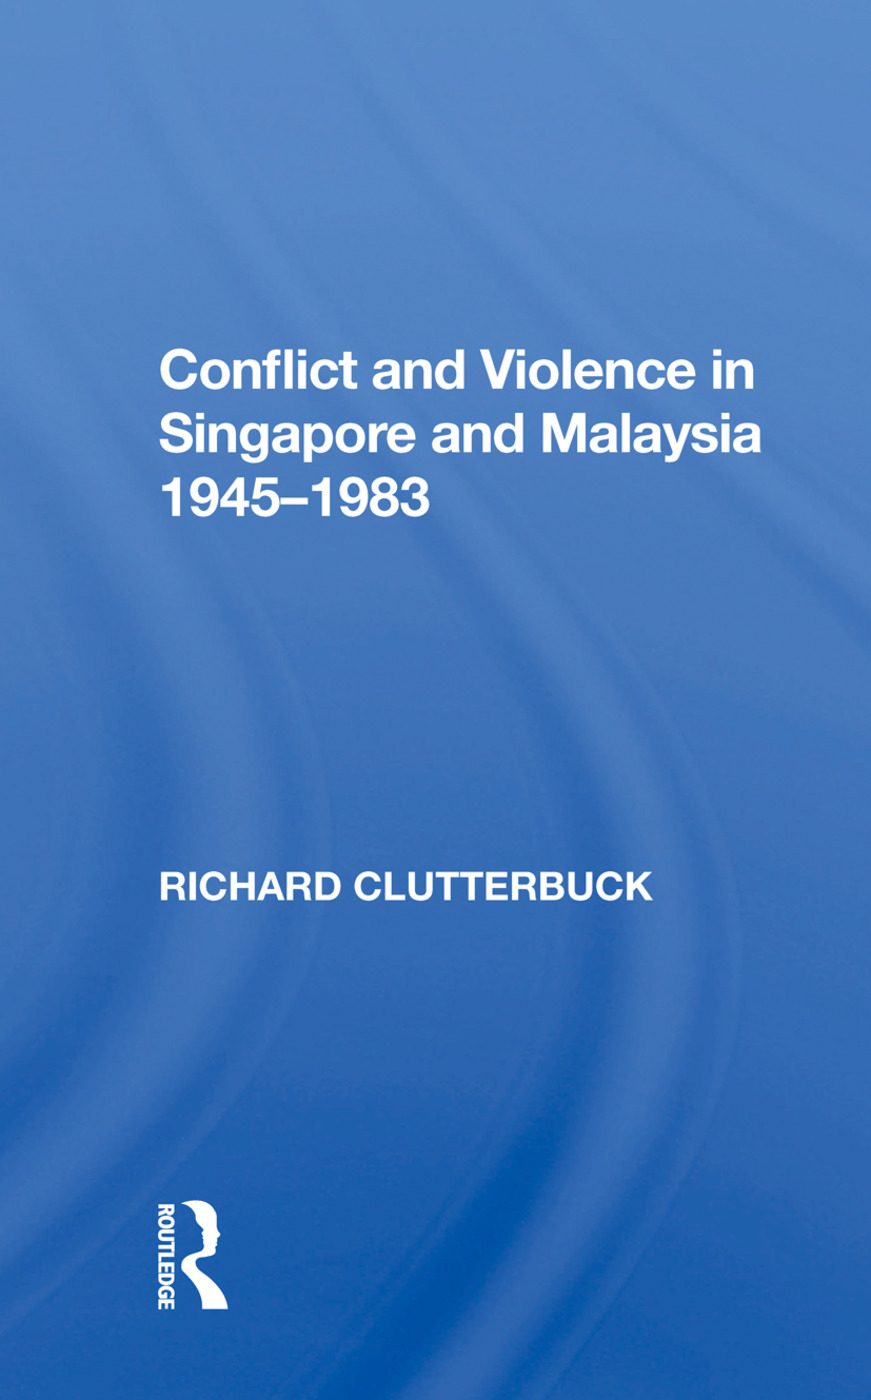 Conflict And Violence In Singapore And Malaysia, 1945-1983 book cover